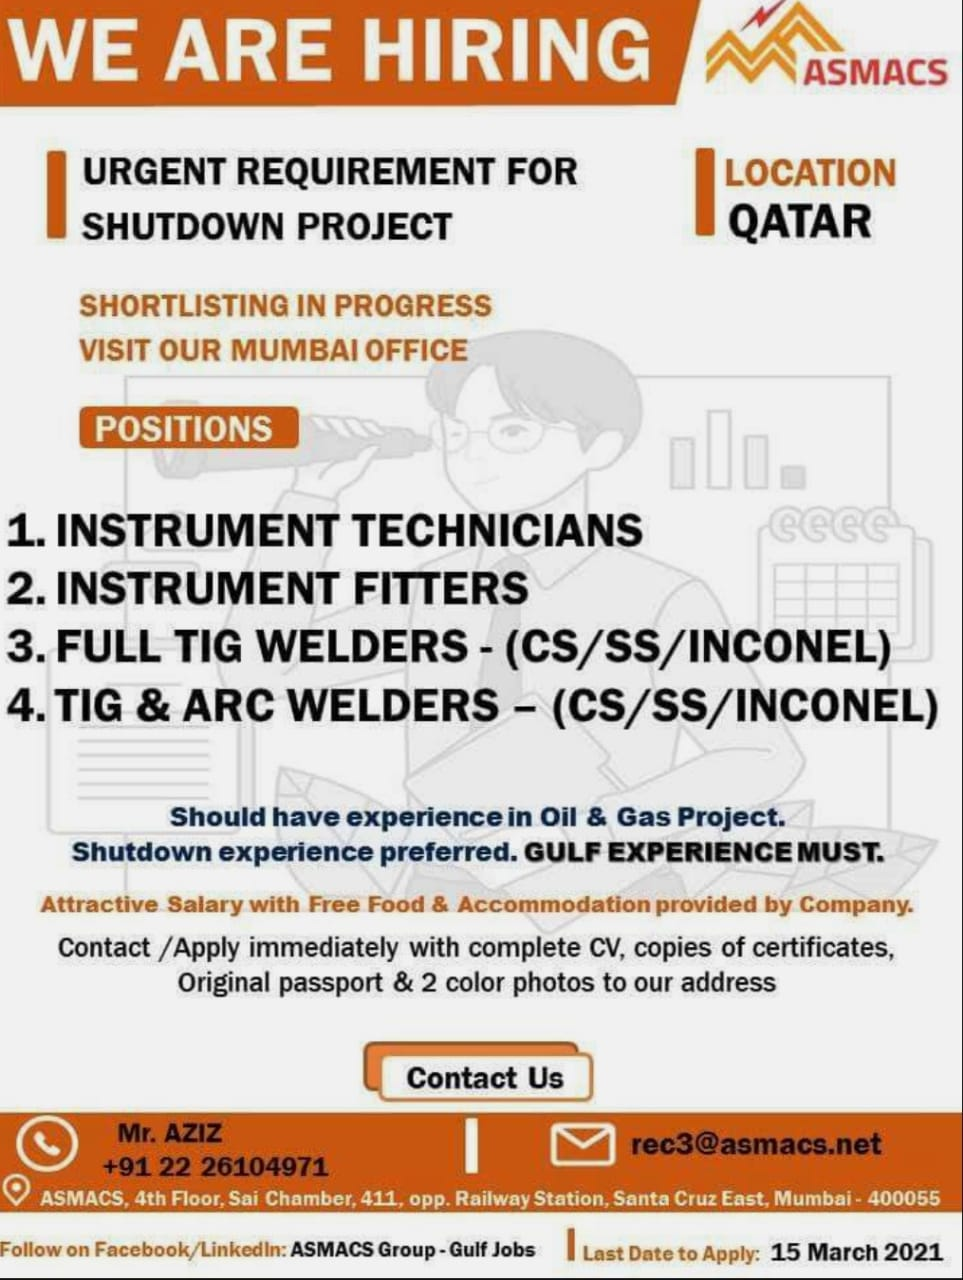 URGENT REQUIREMENT FOR SHUTDOWN PROJECT QATAR